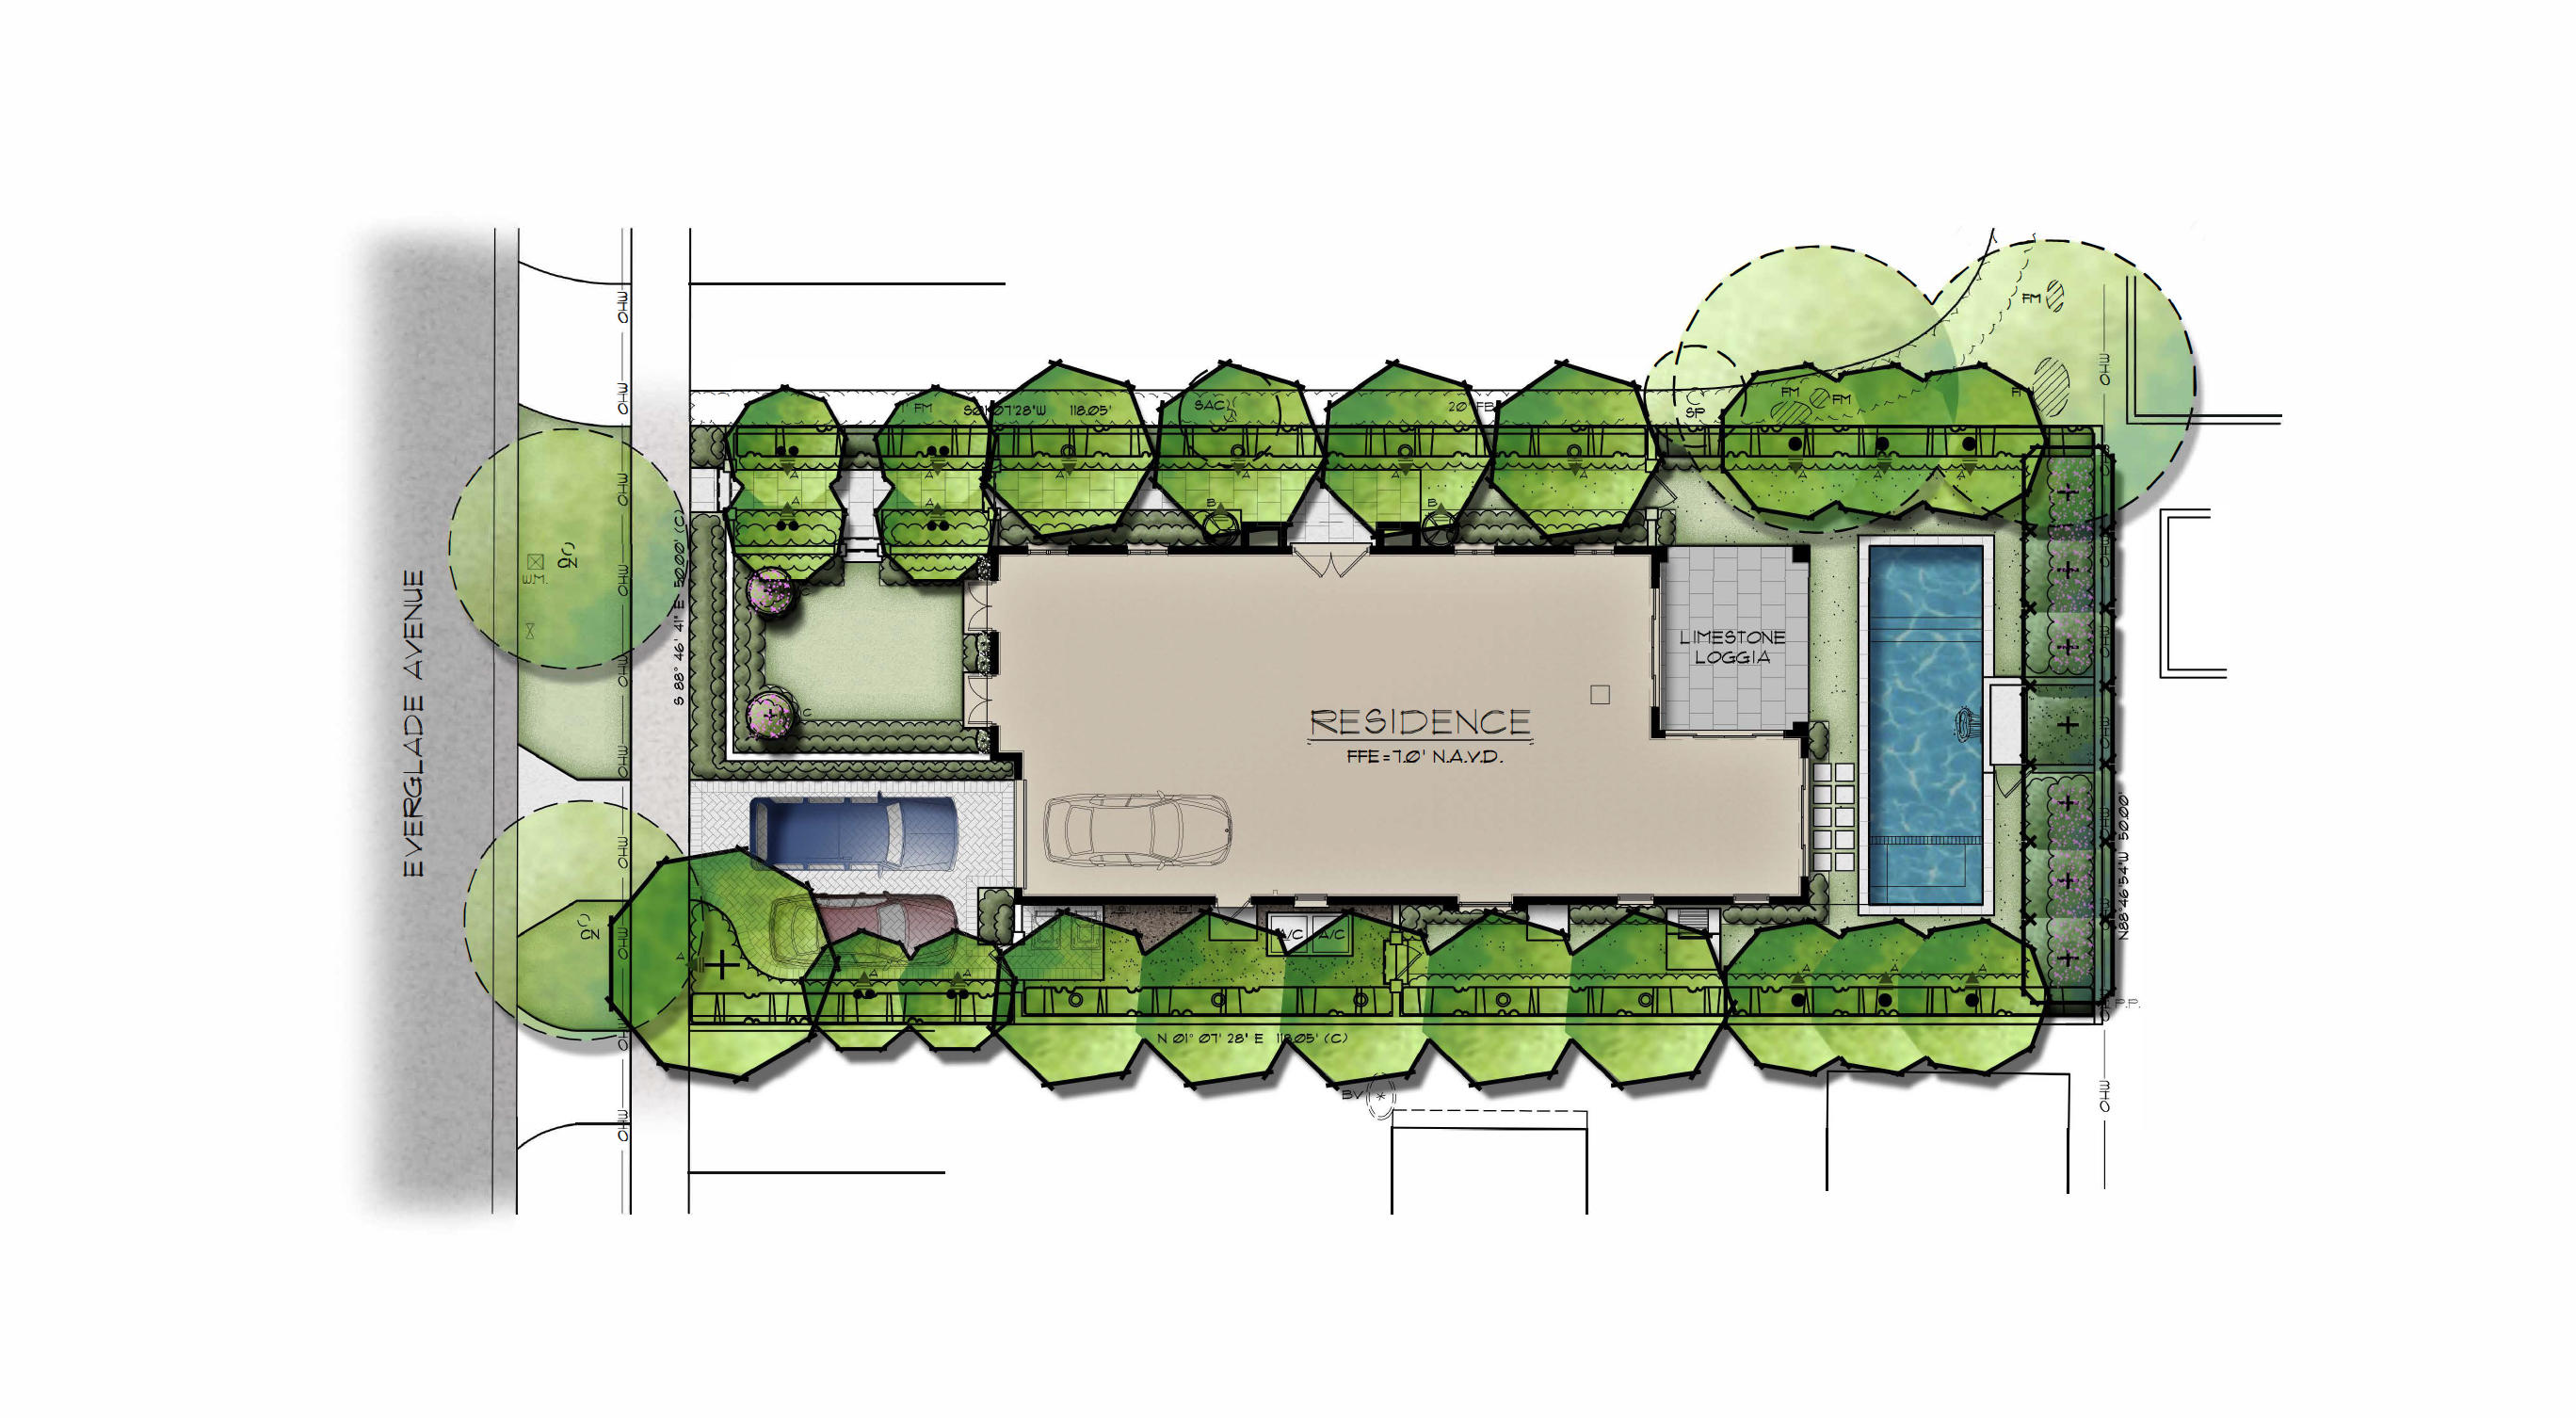 Site plan with cars color